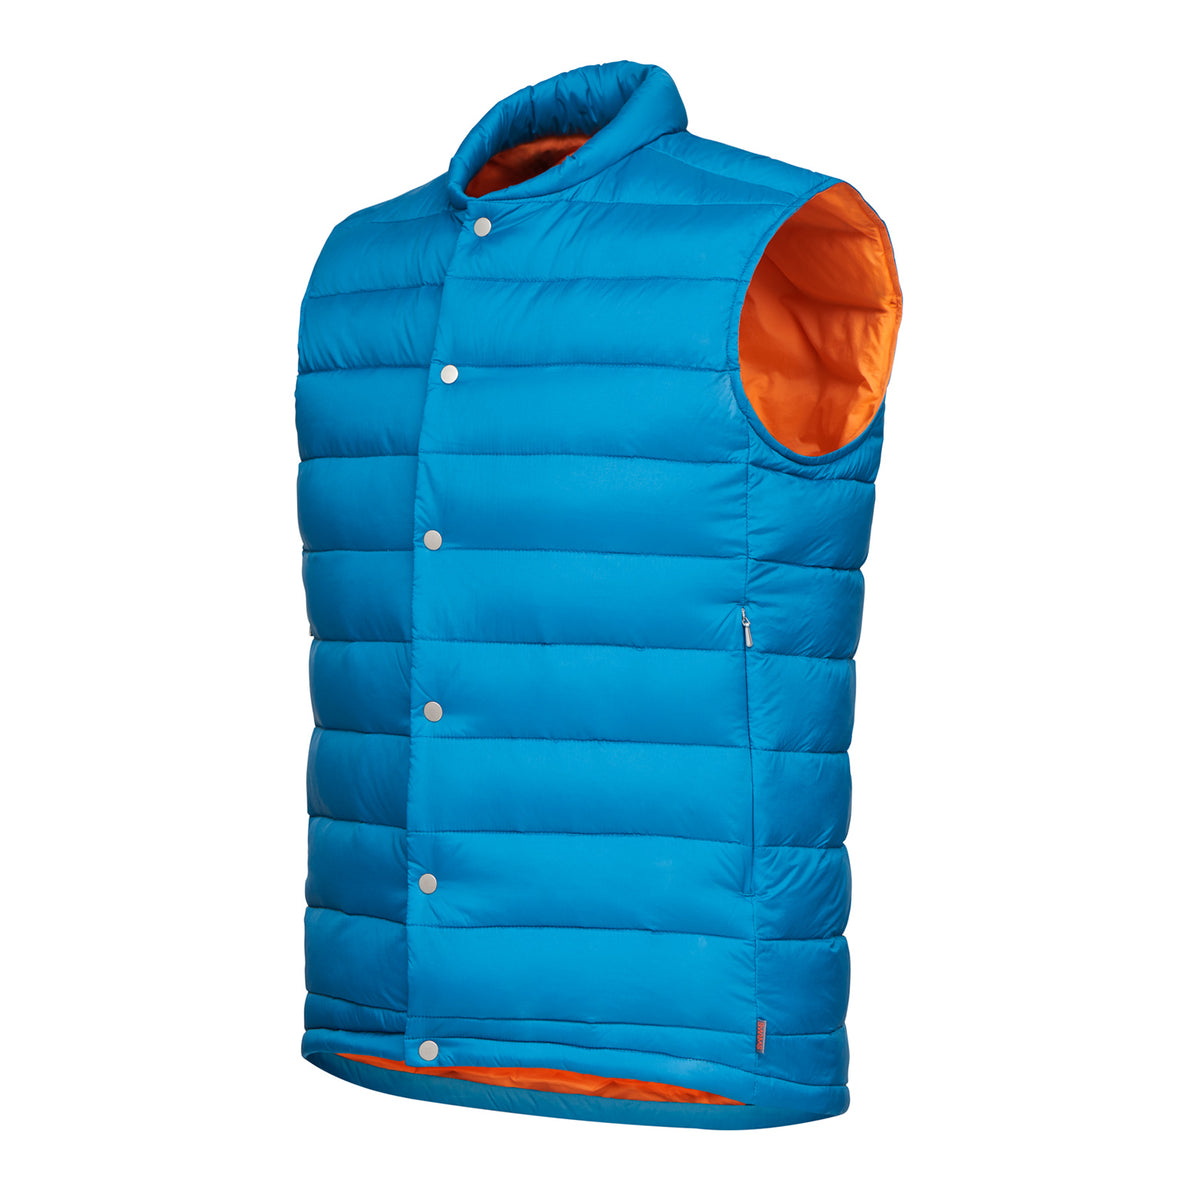 Motion Lite Vest - background::white,variant::Seaport Blue